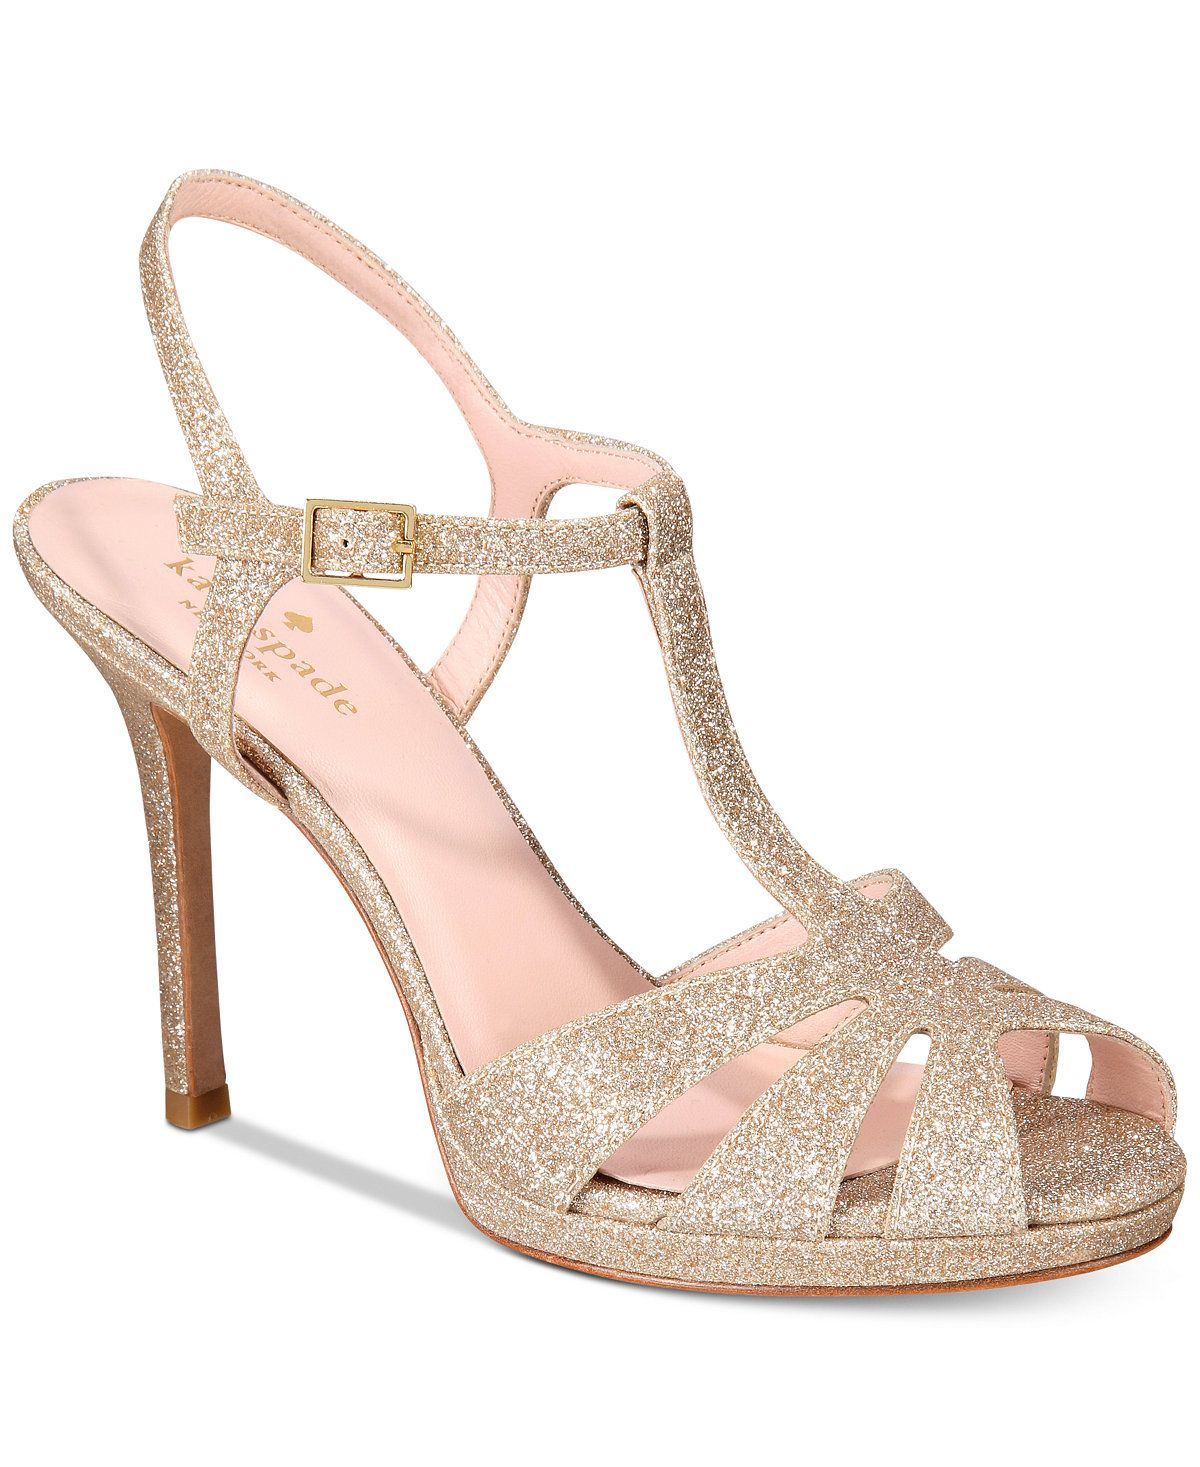 3cafdf4a1a66 kate spade new york Feodora Glitter Dress Sandals - Heels - Shoes - Macy s   www.macys.com